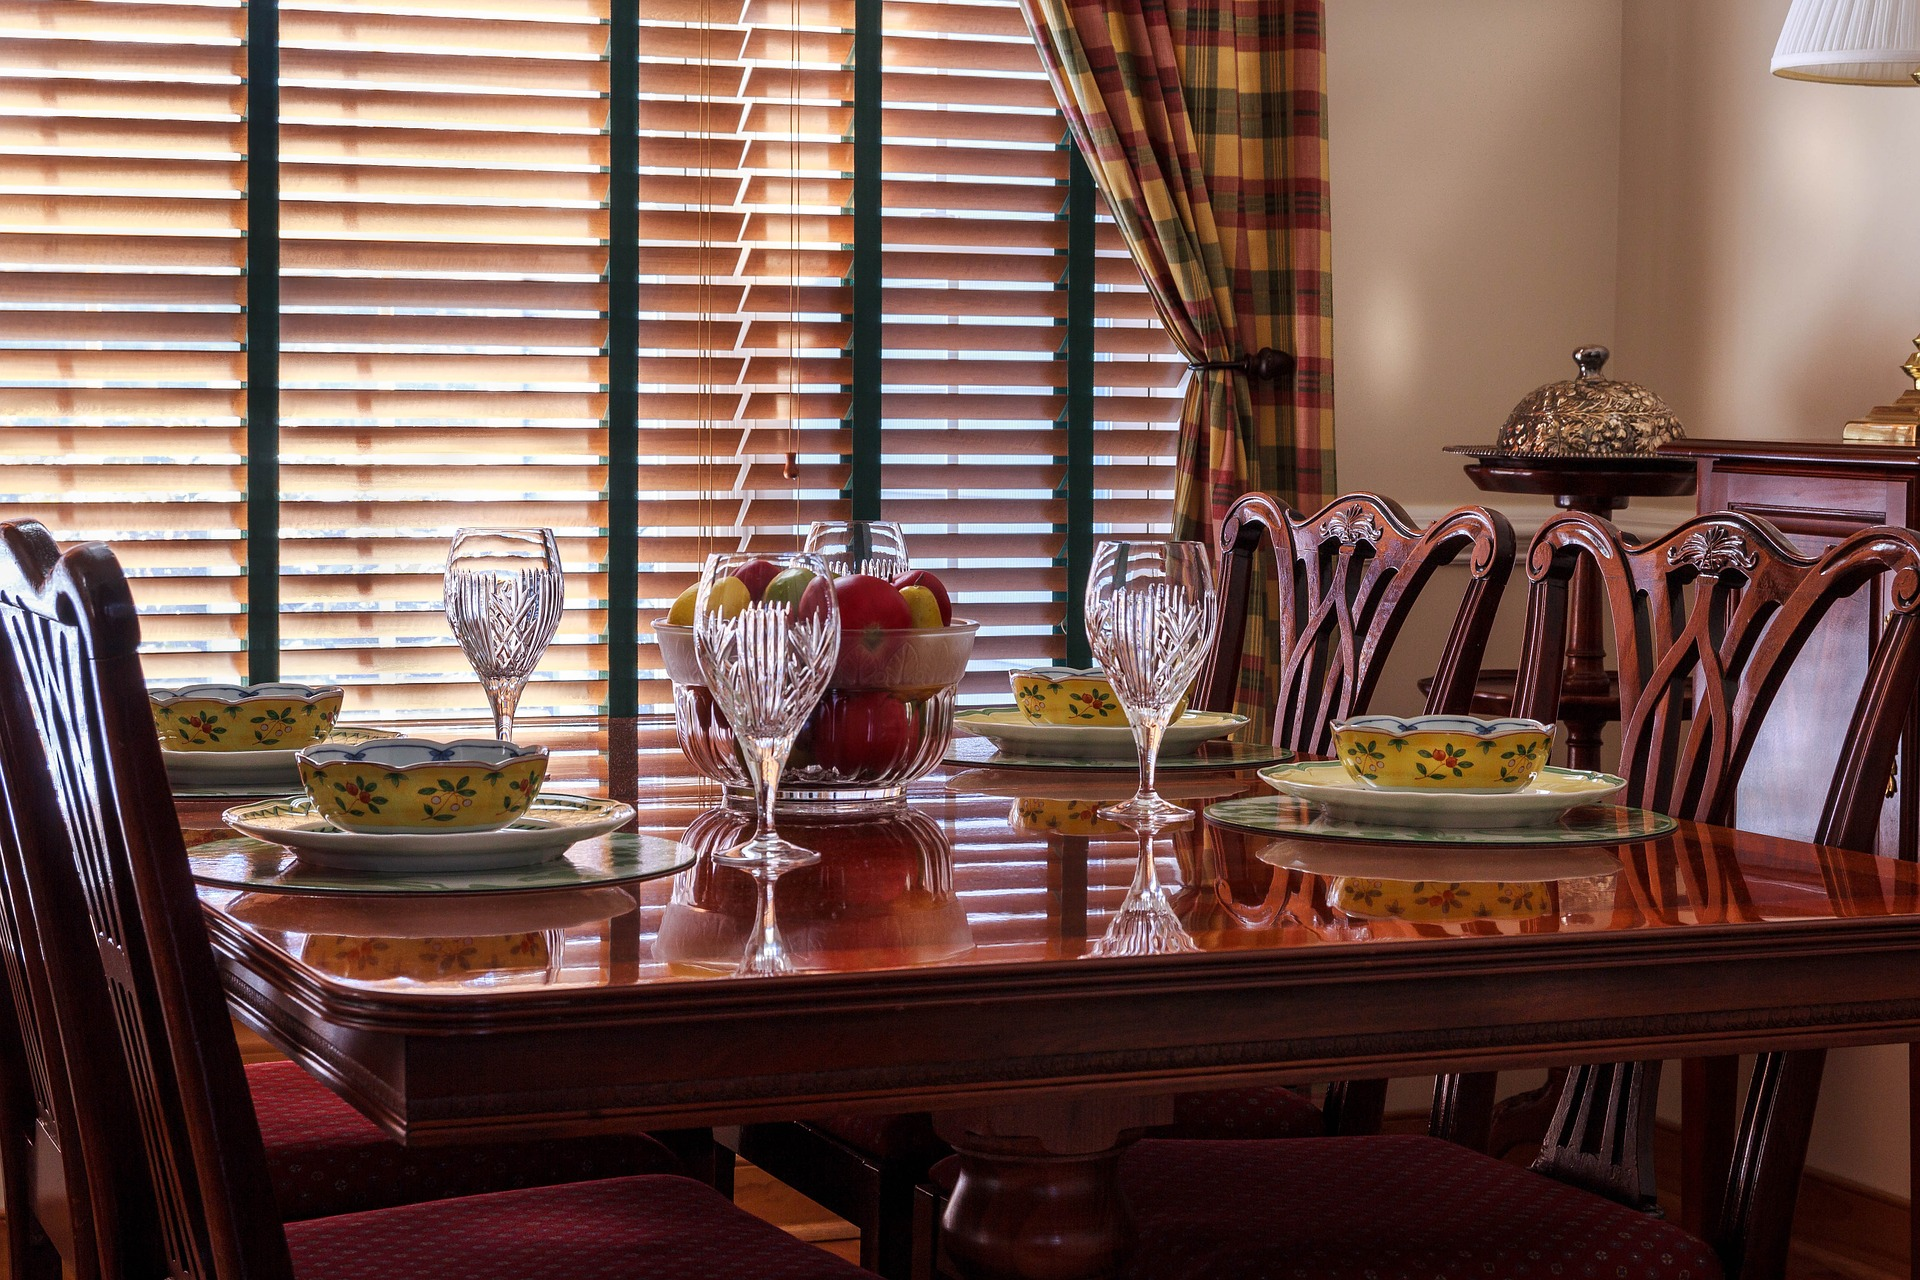 Five Table Styles To Consider When Buying A Dining Set